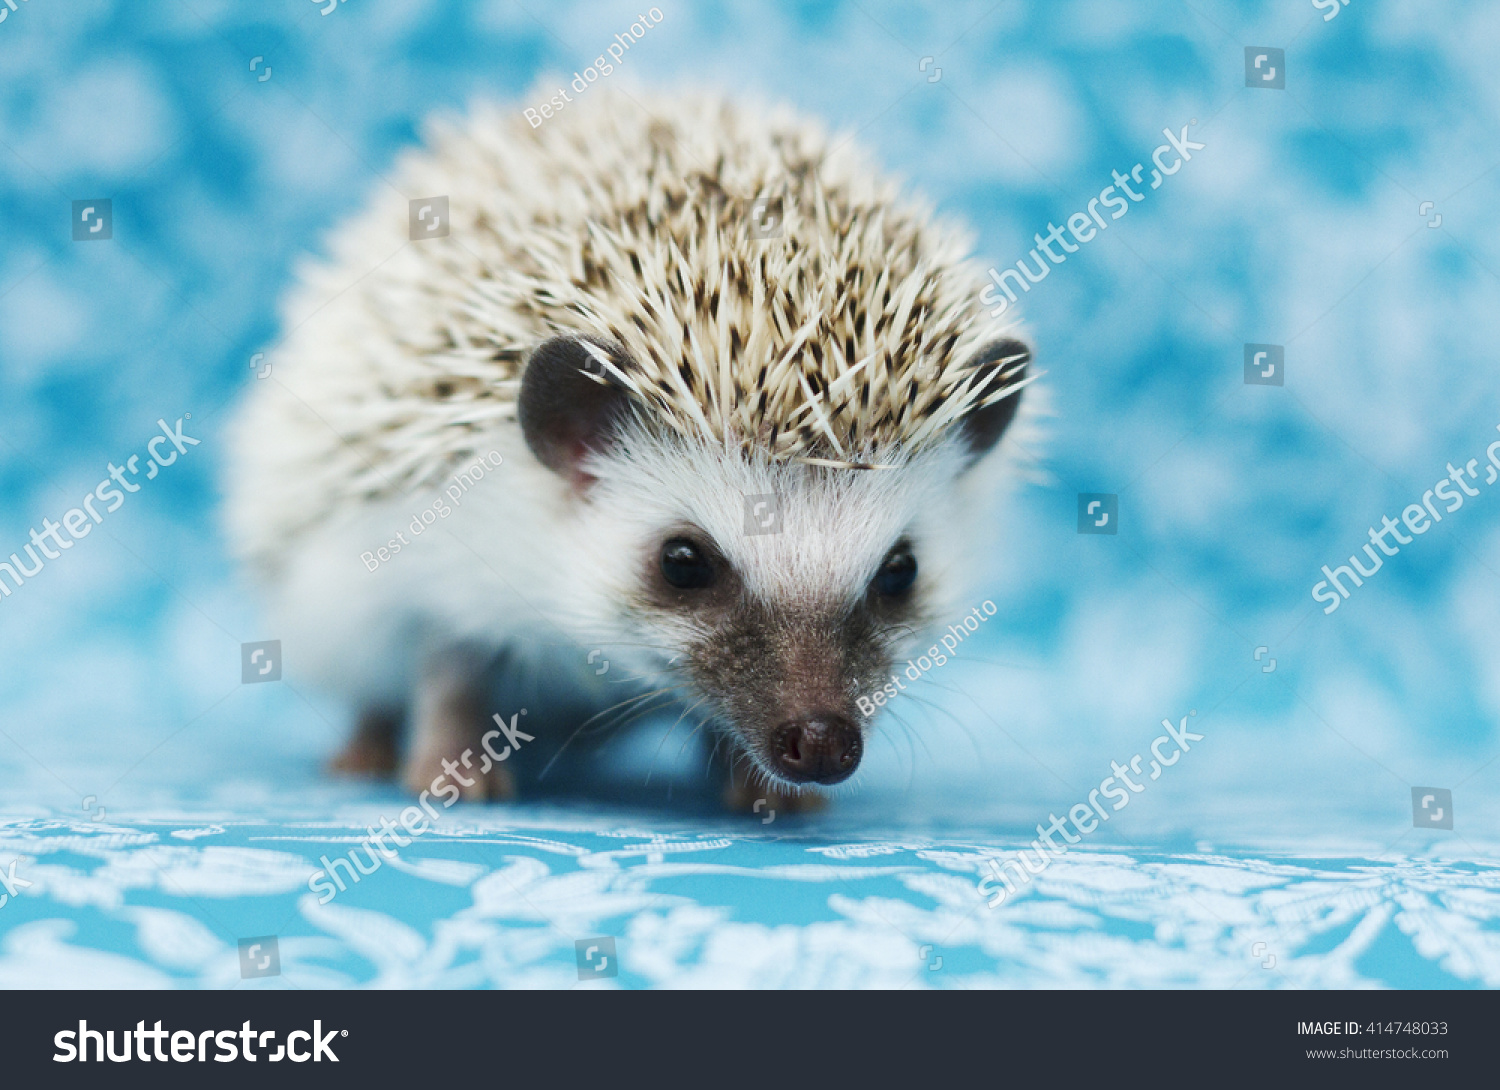 Beautiful Cute Young Small Hedgehog Baby Stock Photo 414748033 ...